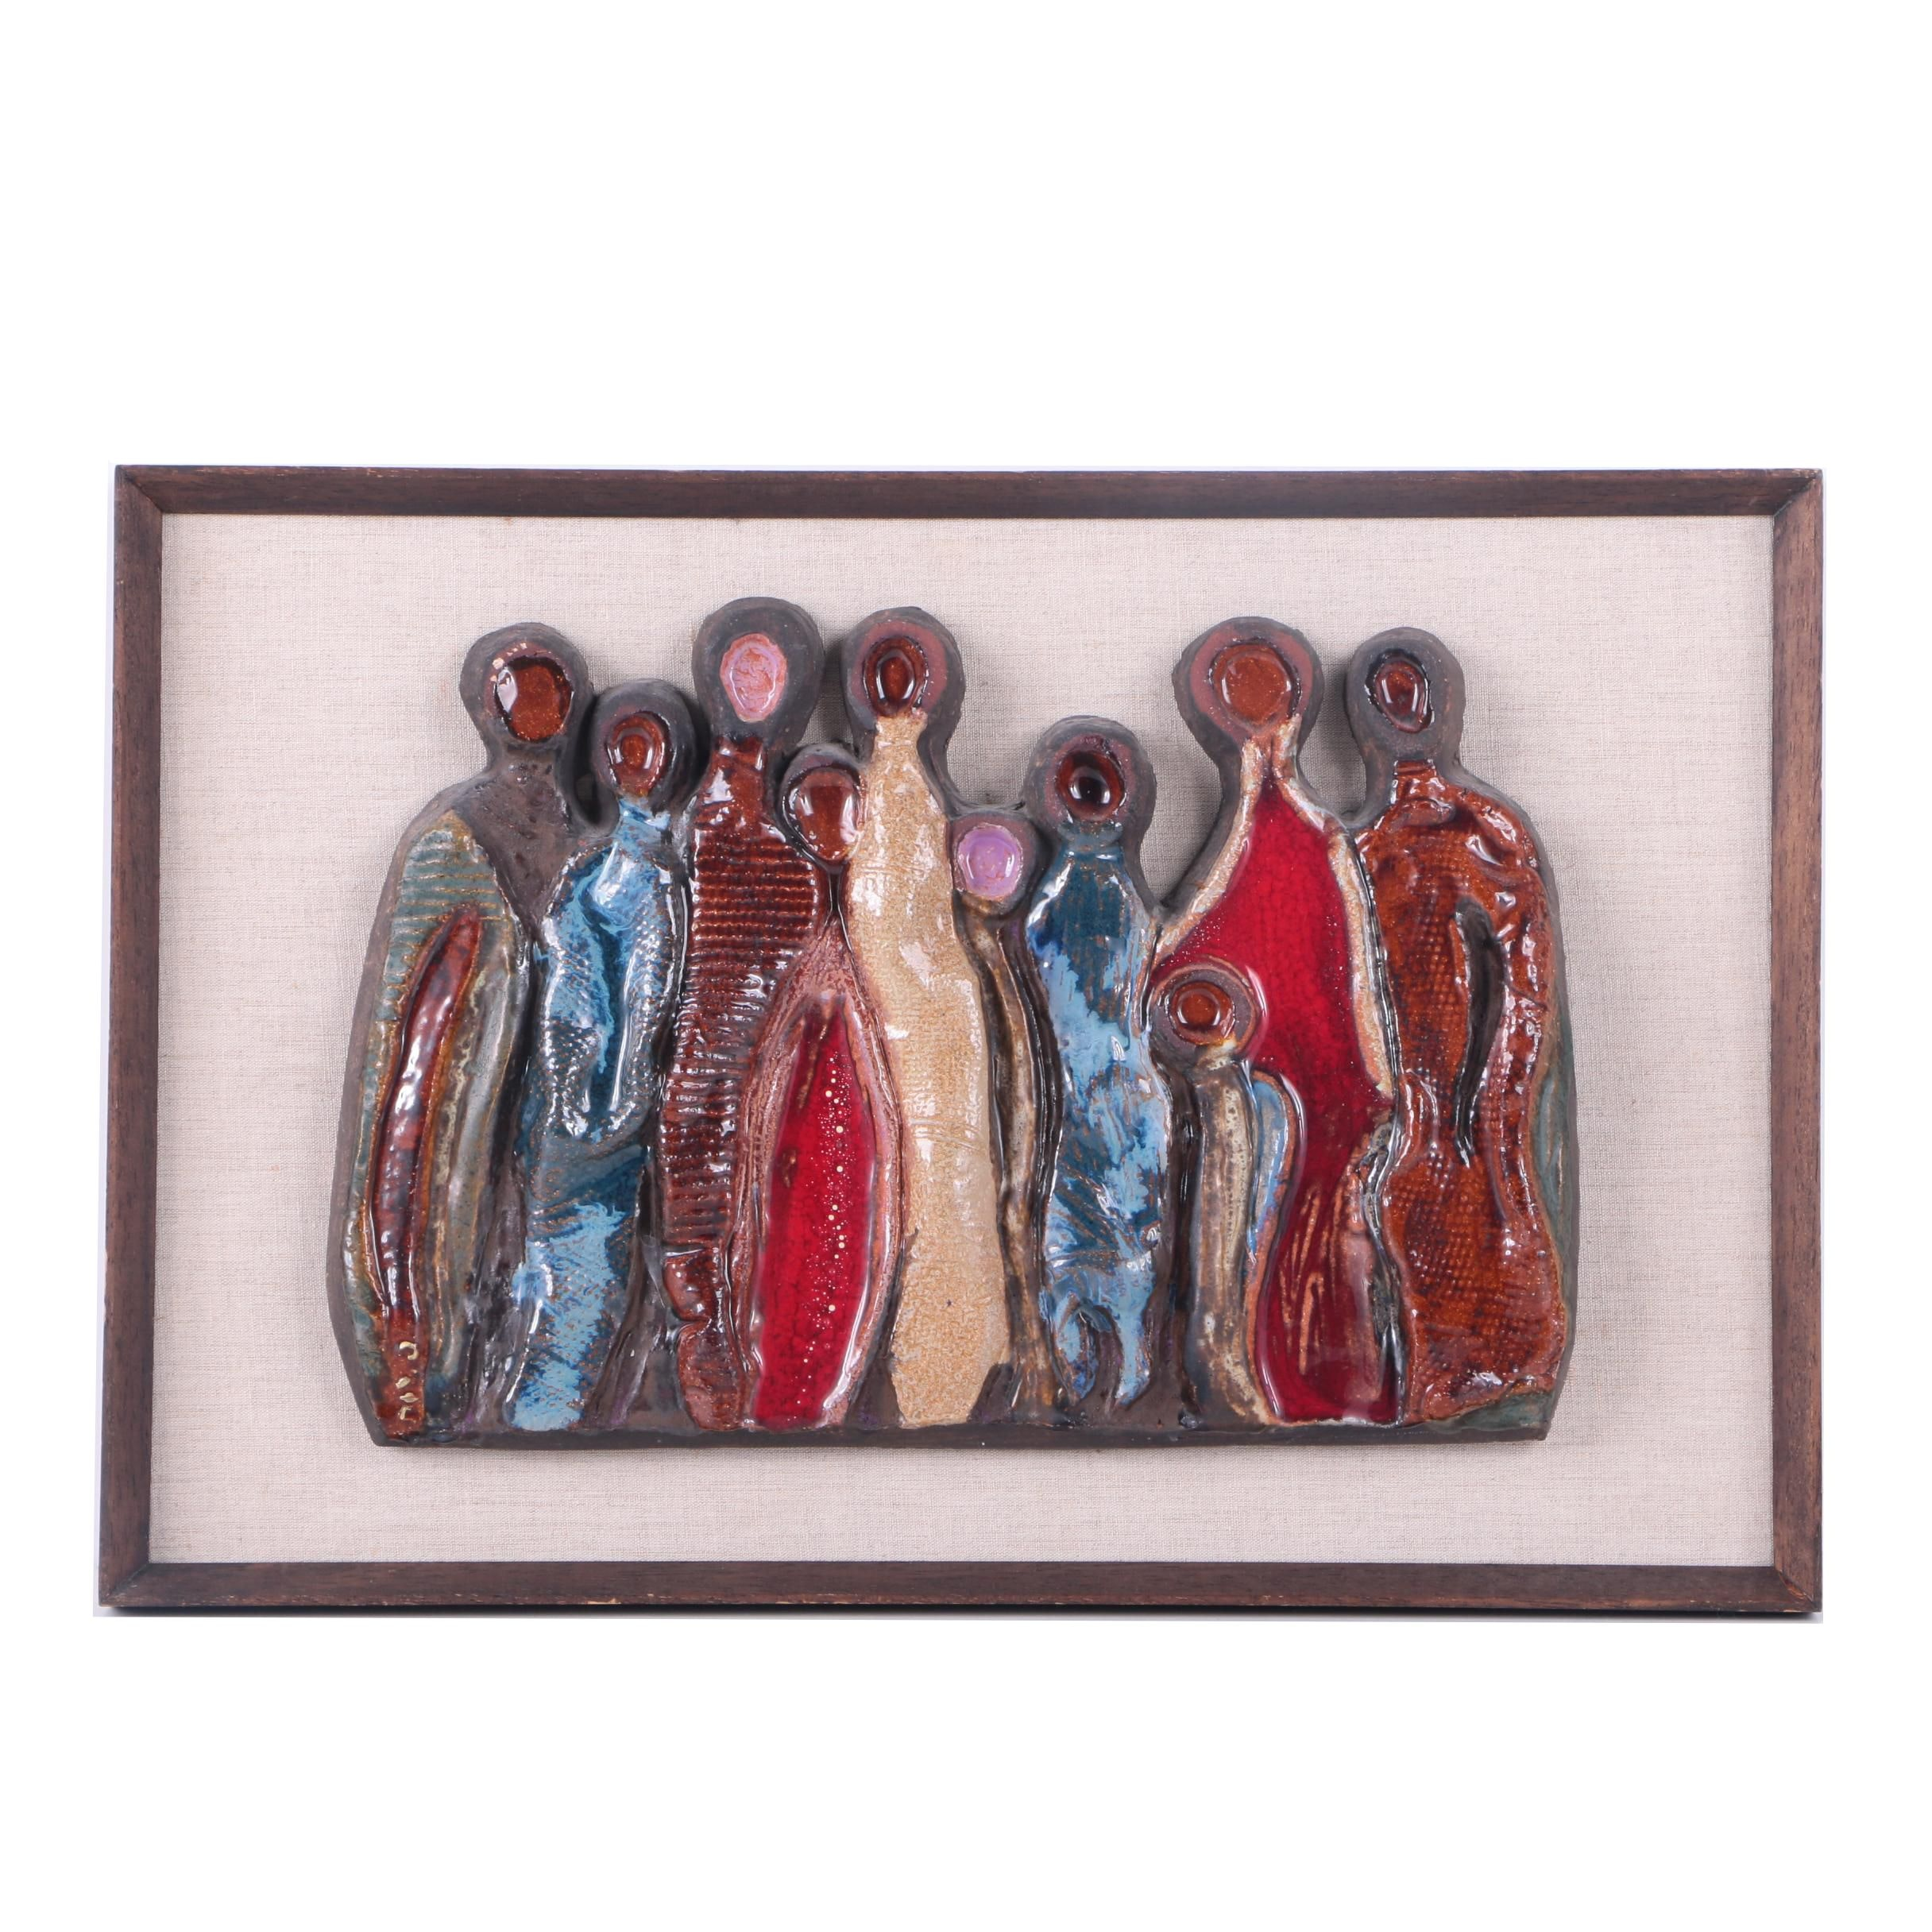 Ceramic Plaque Featuring Abstract Figures